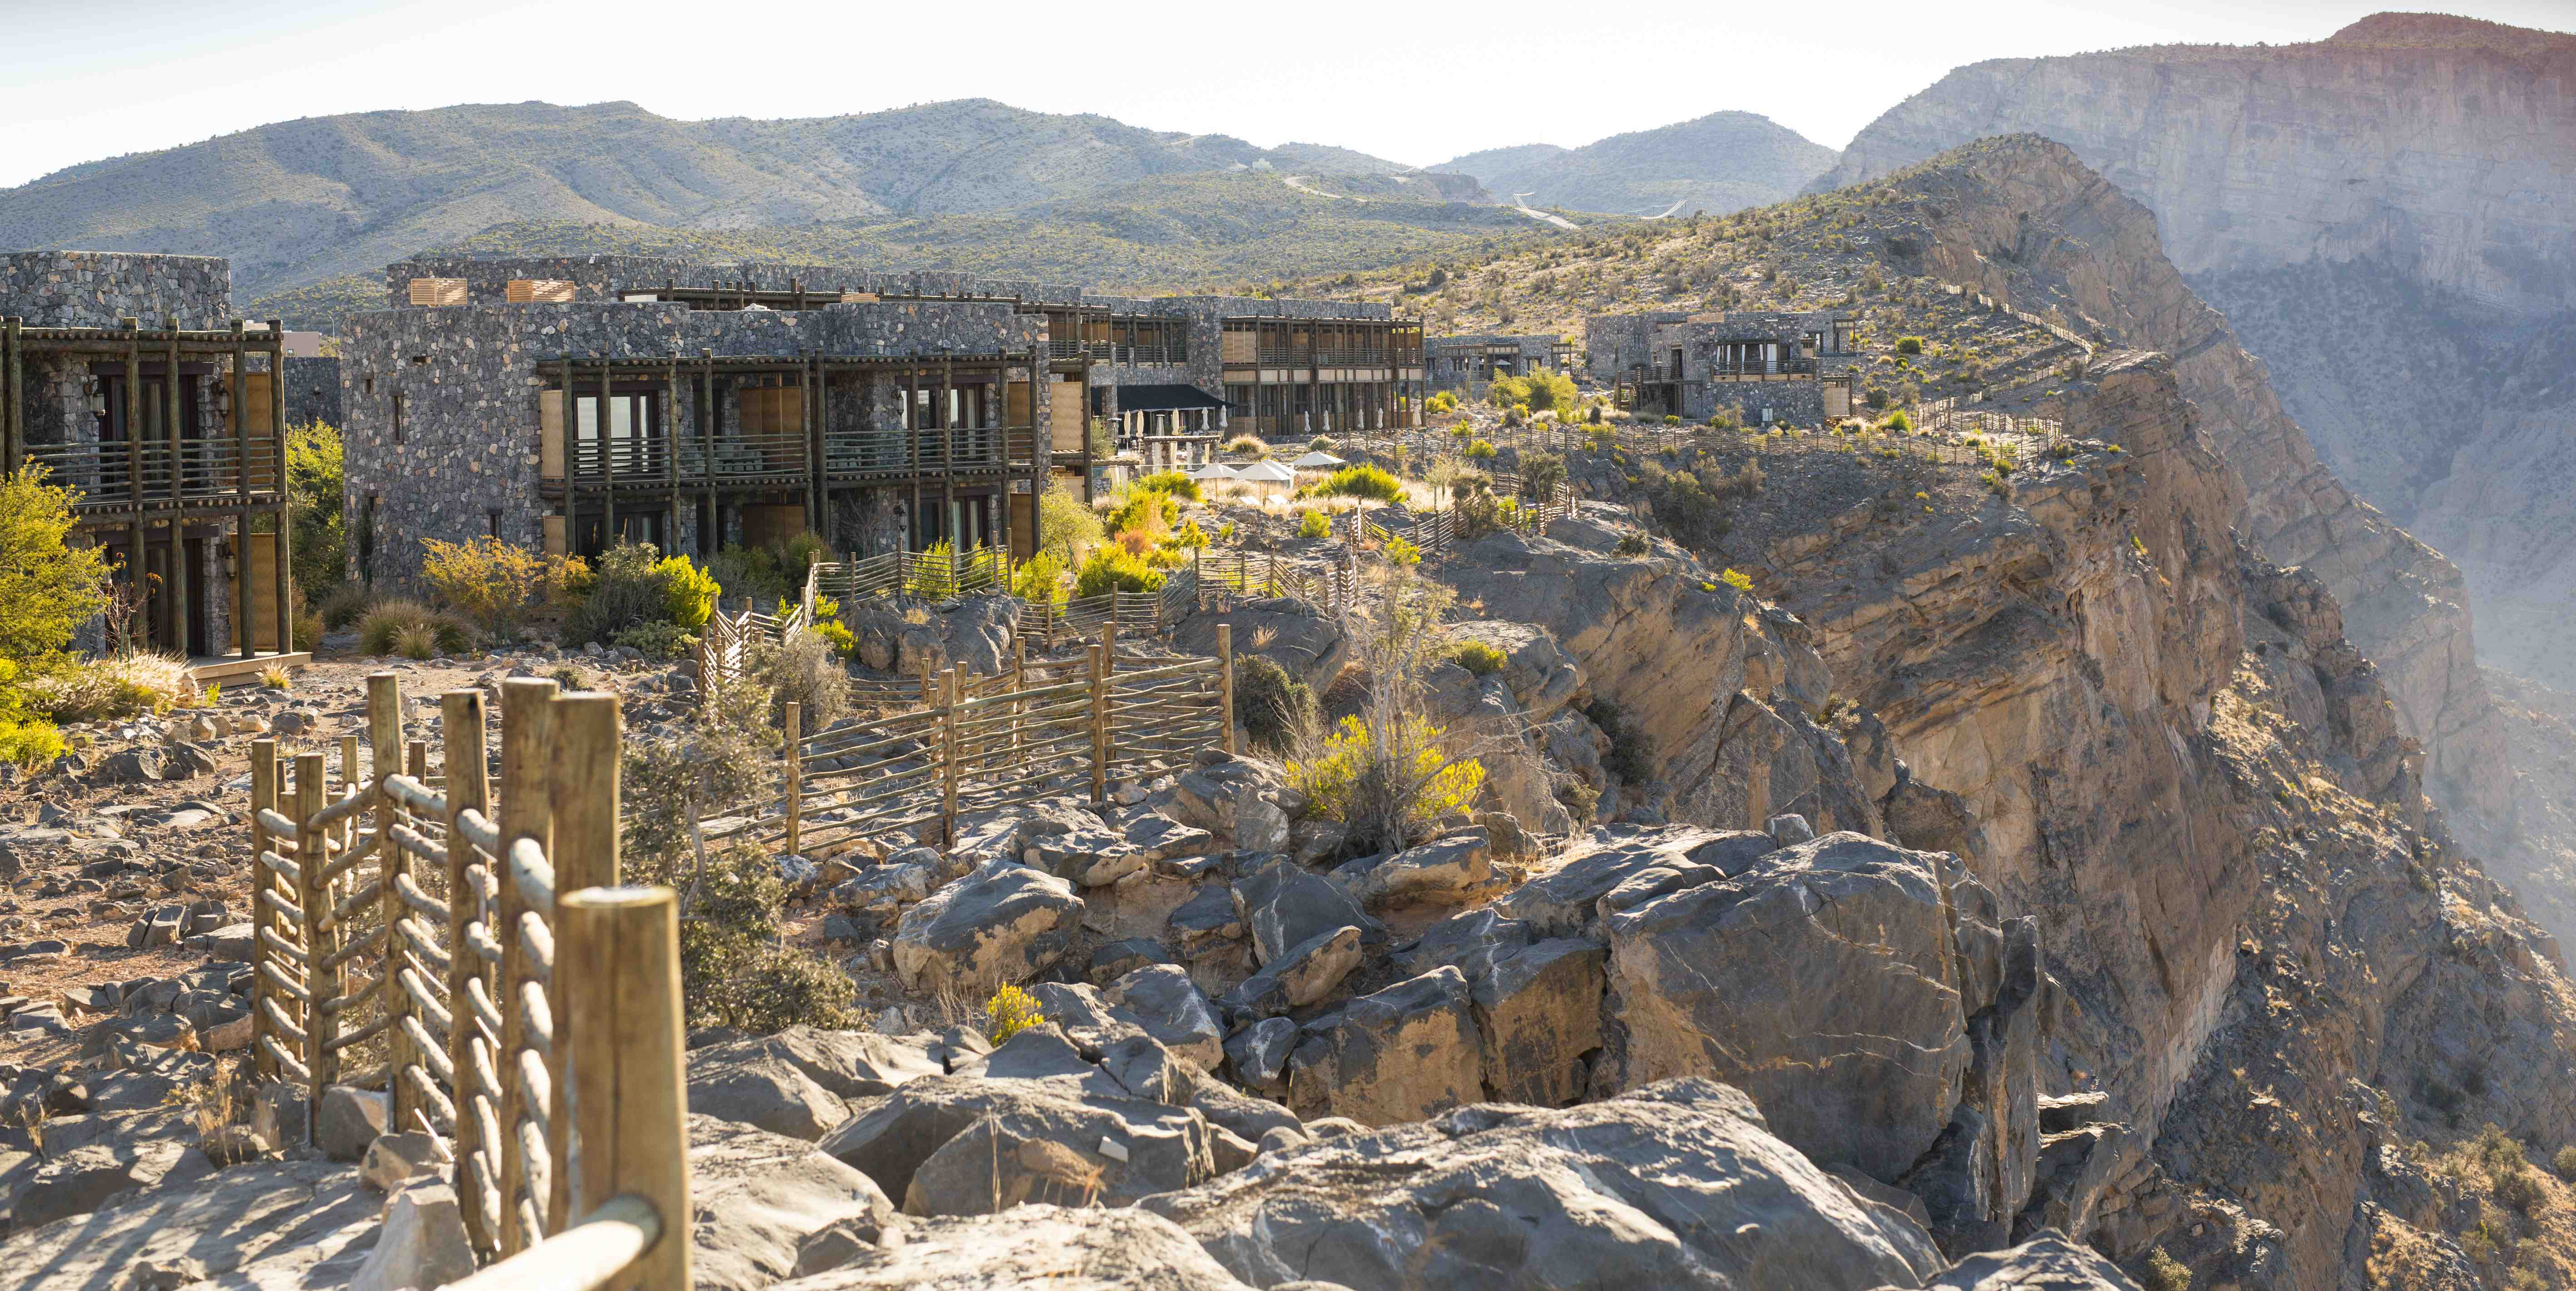 Alila Jabal Akhdar Cliff